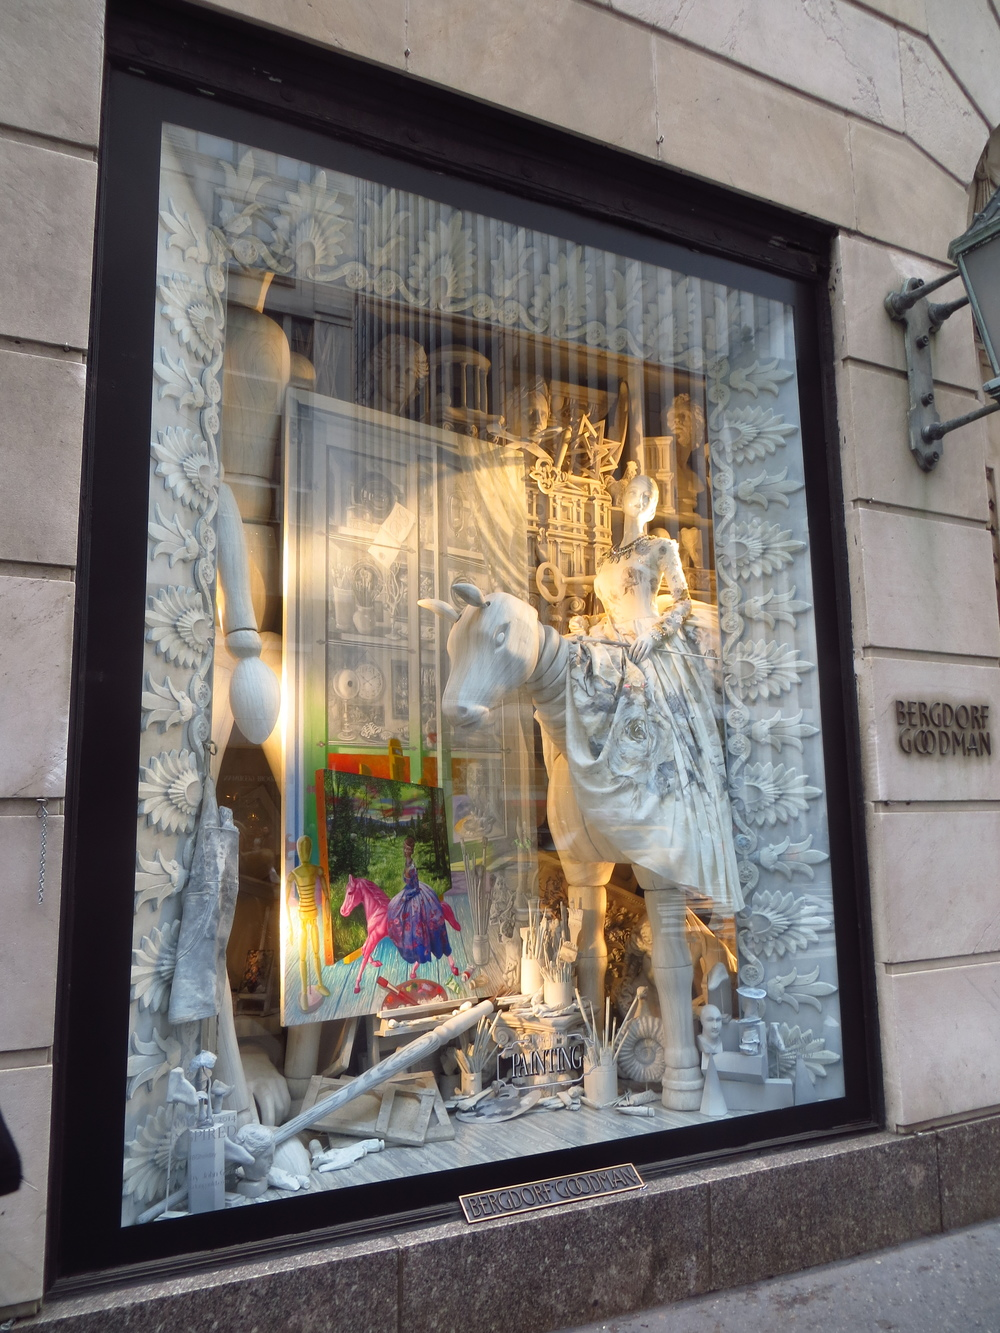 Holiday Window (Bergdorf Goodman)